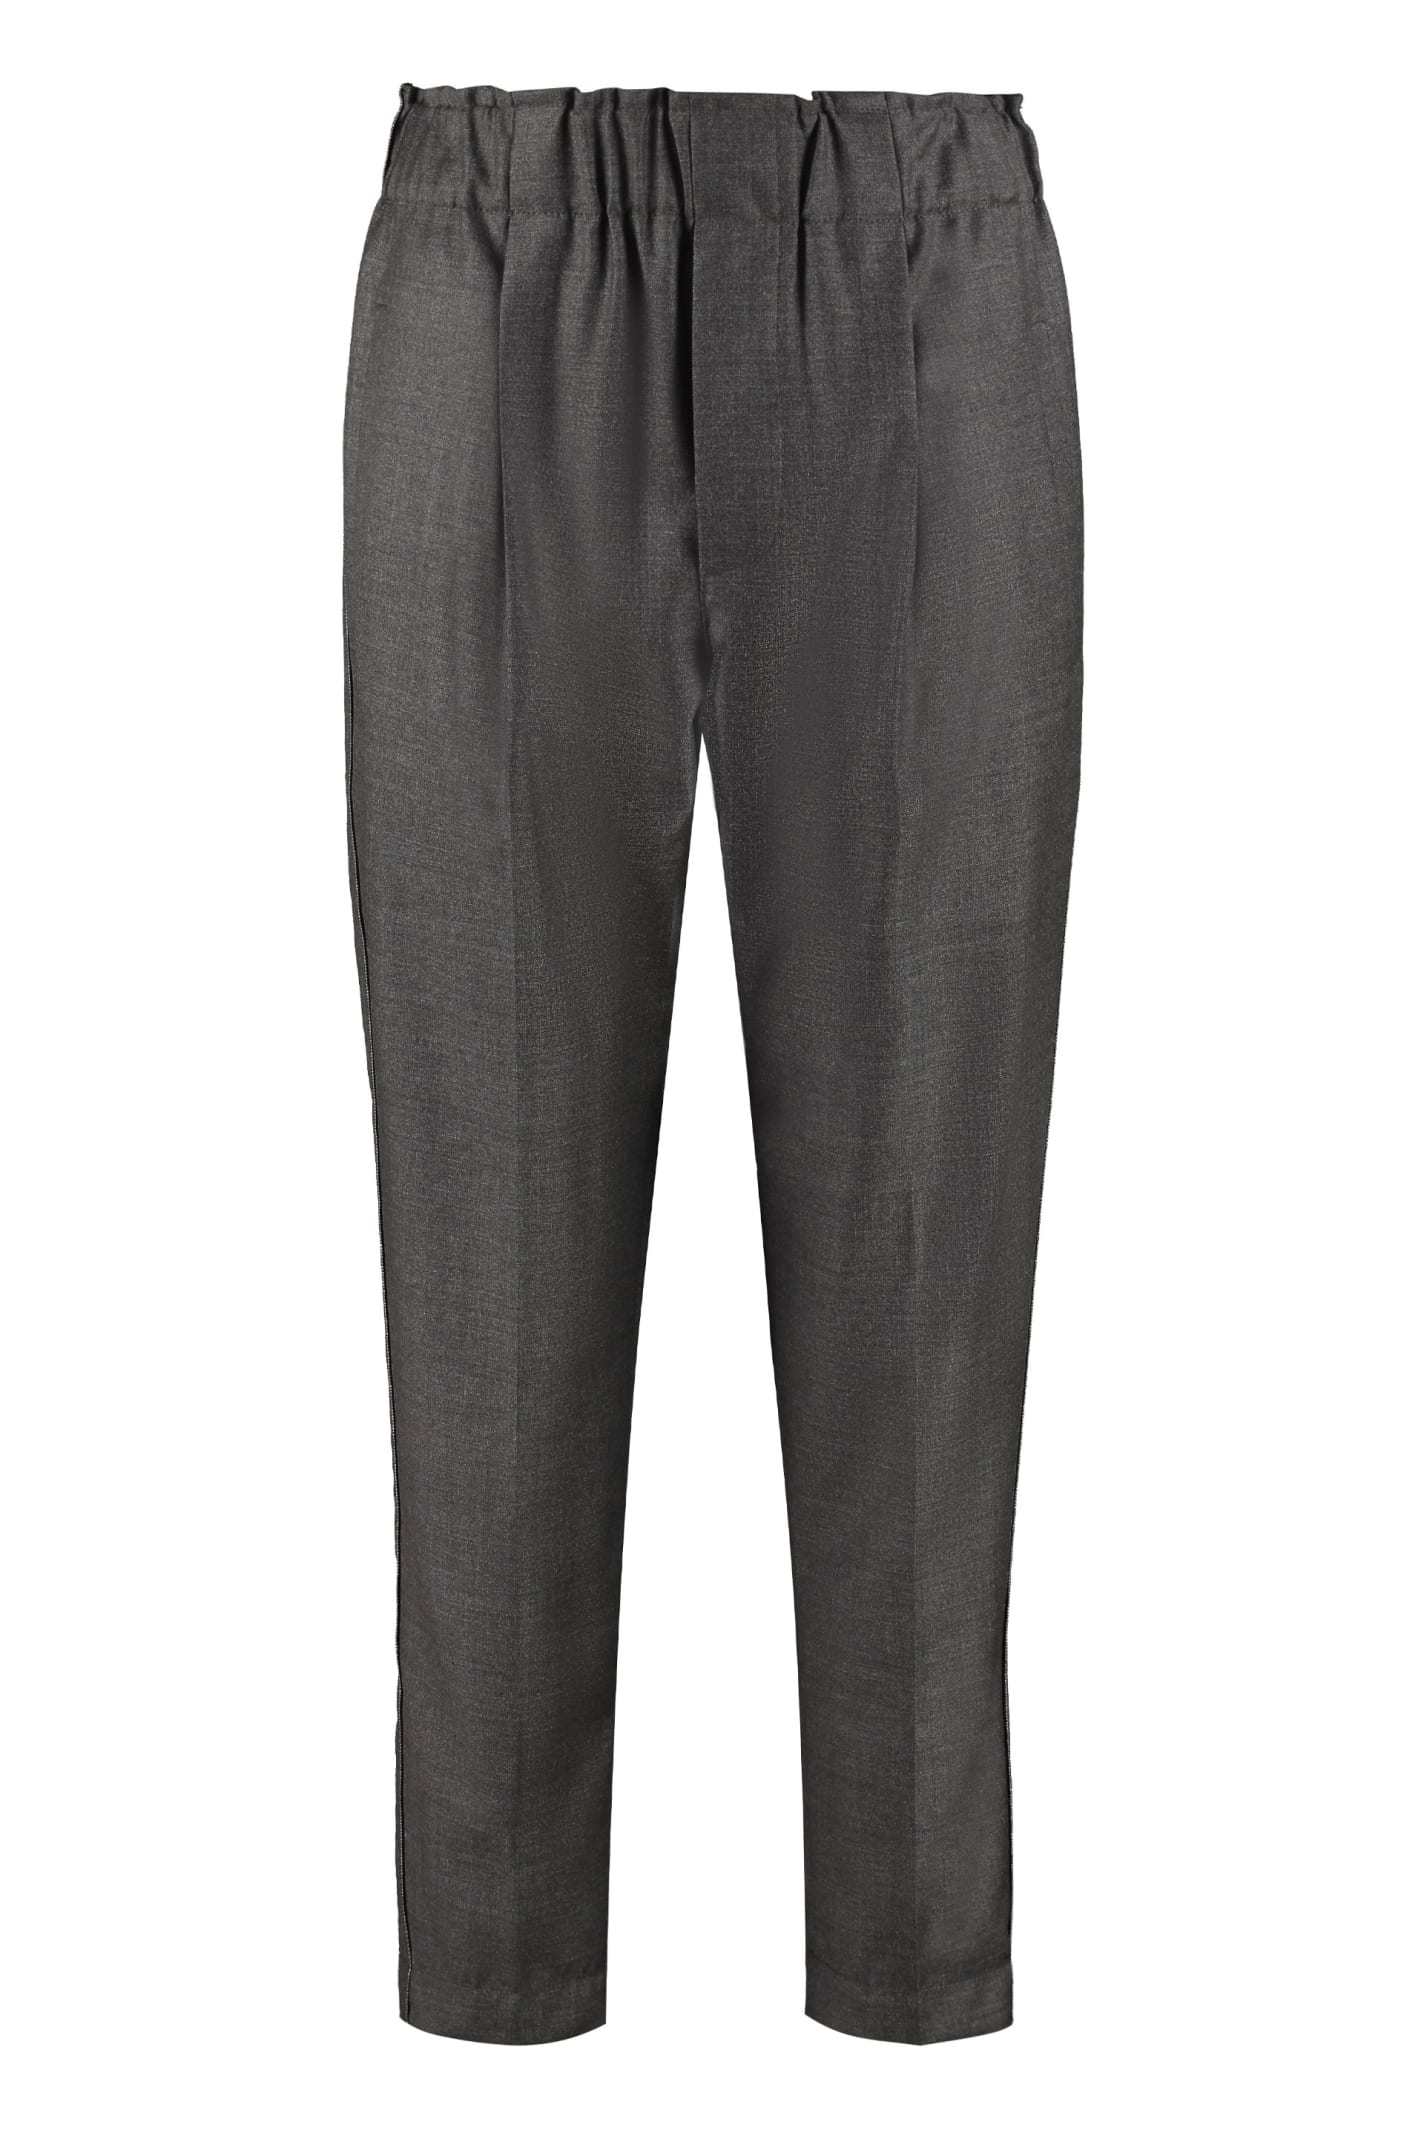 Brunello Cucinelli High-waist Tapered-fit Trousers